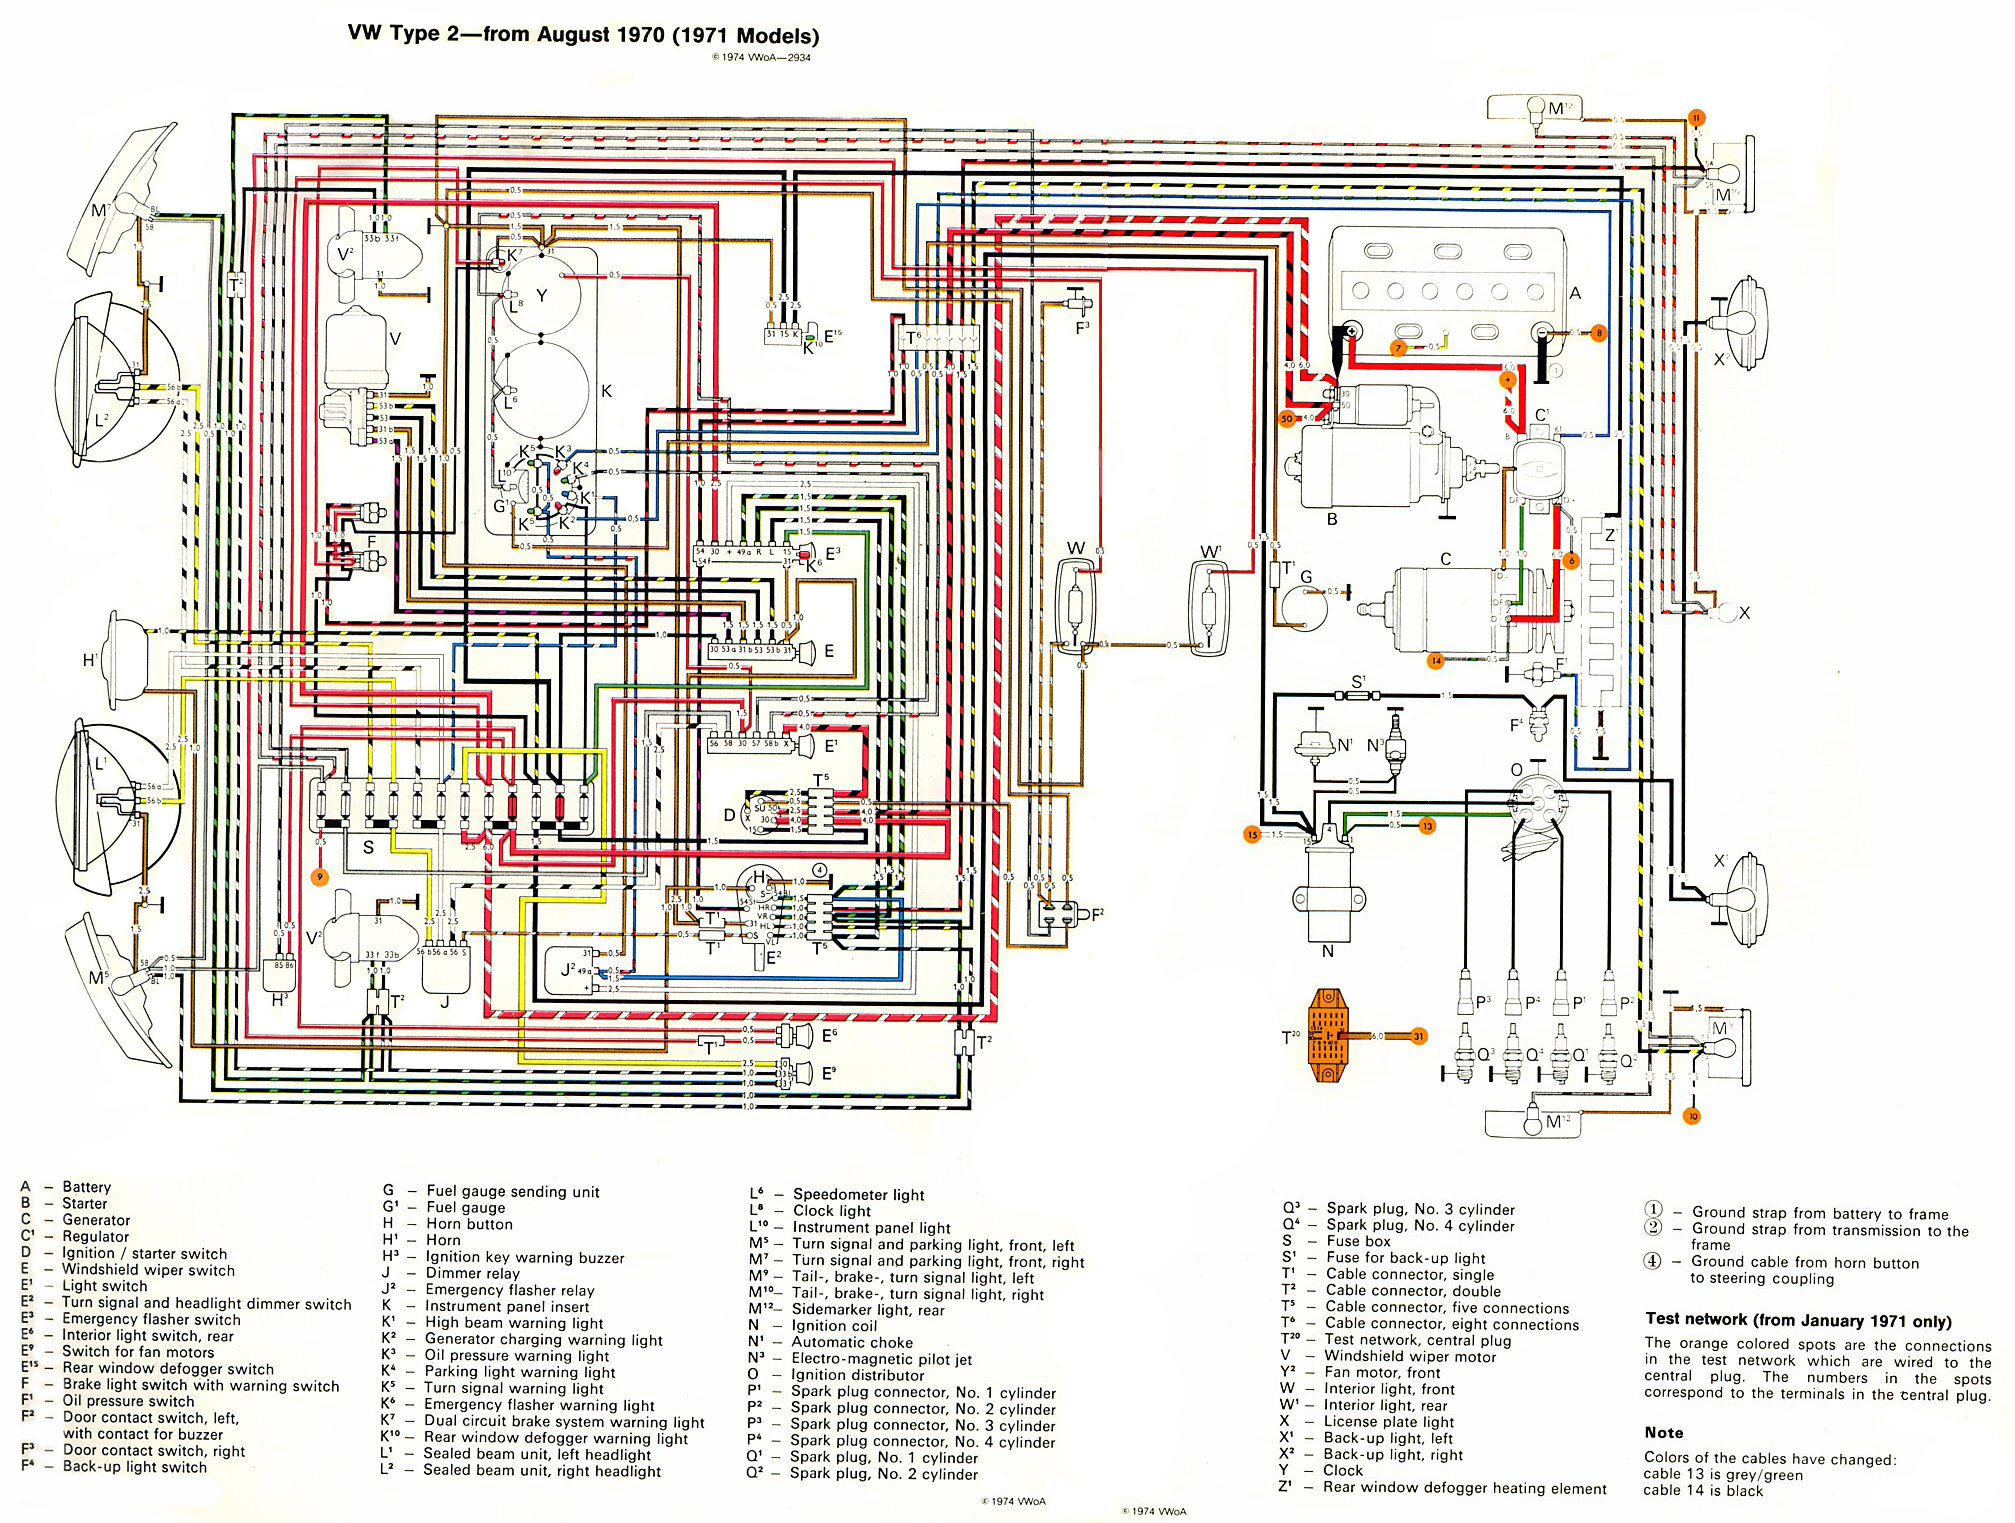 baybus_71_fixed bad boy buggy wiring diagram 36 volt ezgo wiring diagram 1997 vw golf wiring diagram at couponss.co